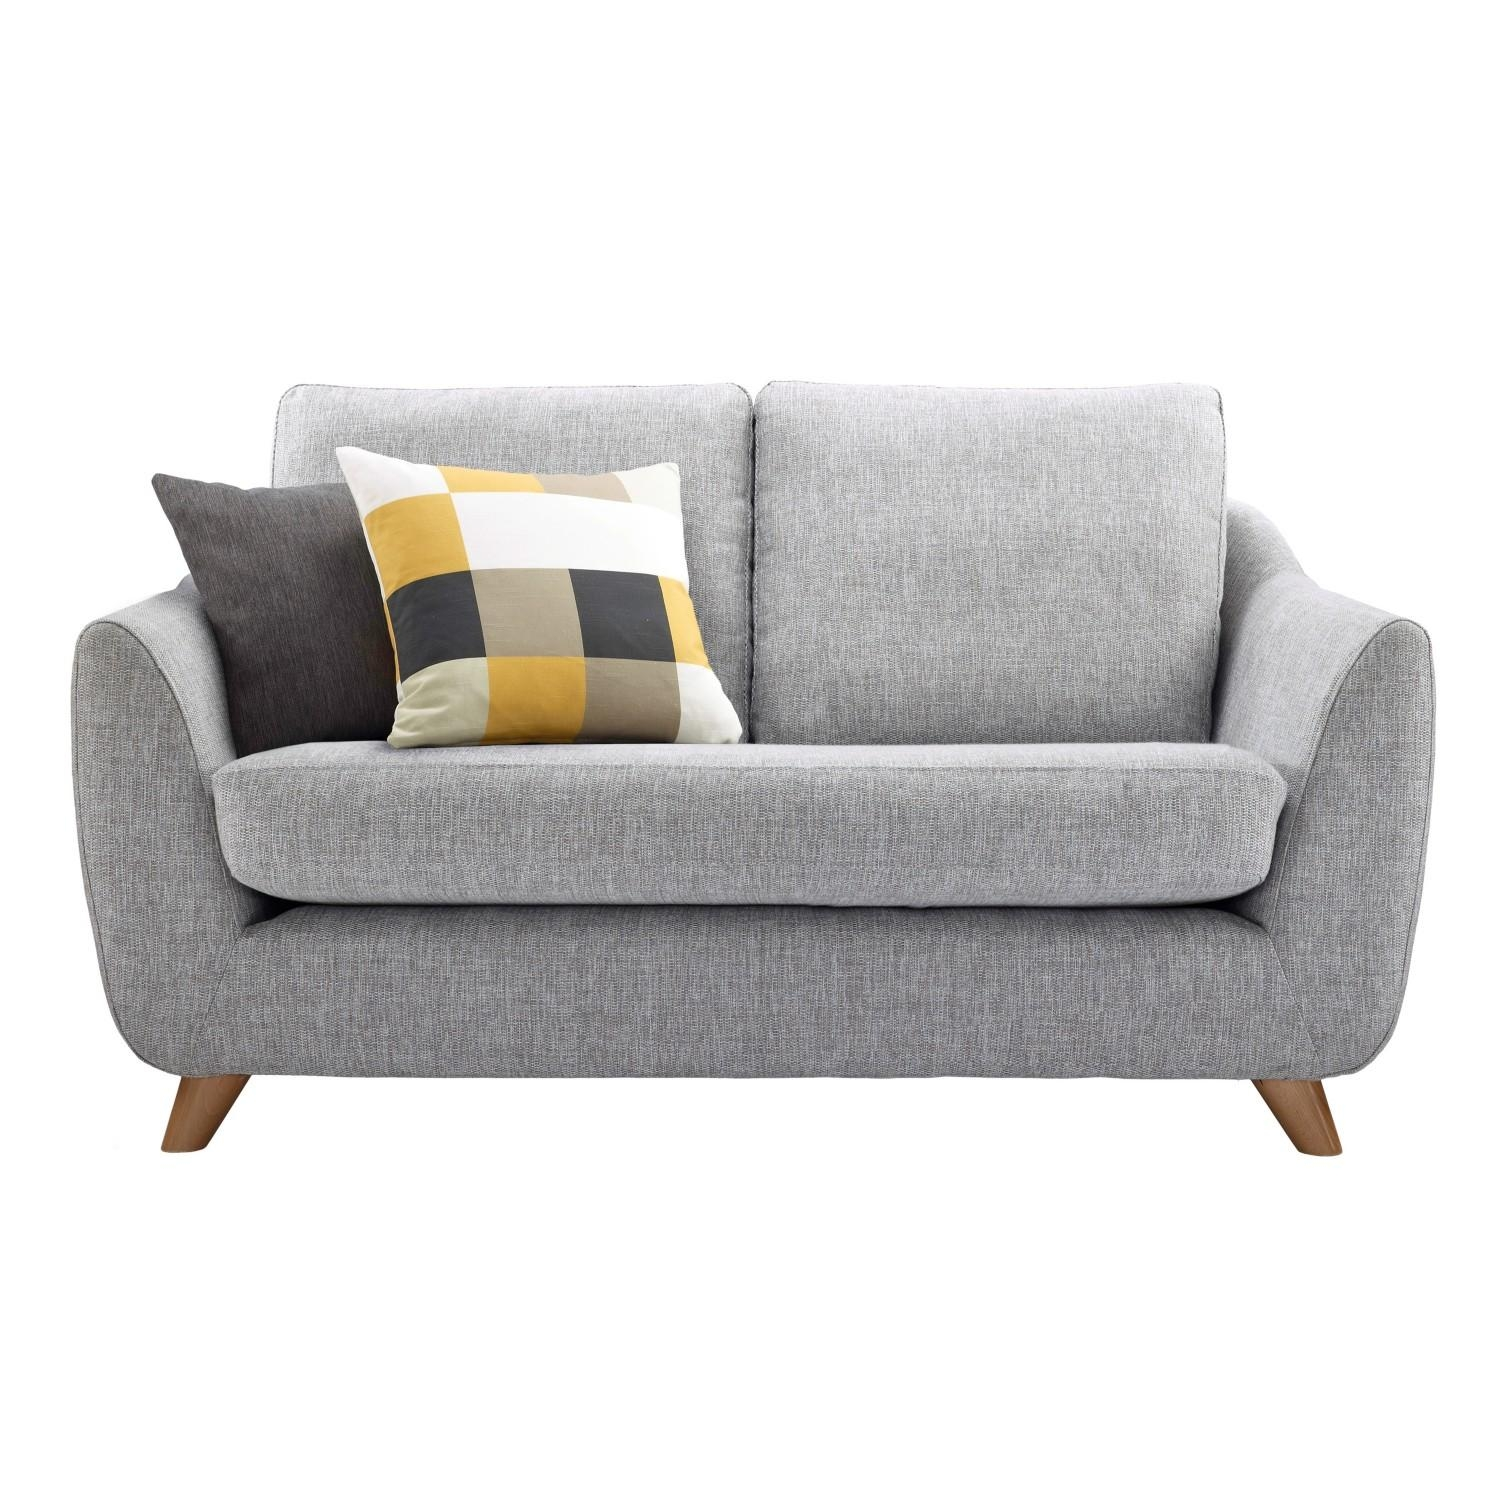 Furniture: Comfy Design Of Sears Sofa Bed For Lovely Home Intended For Sears Sofa (View 7 of 20)